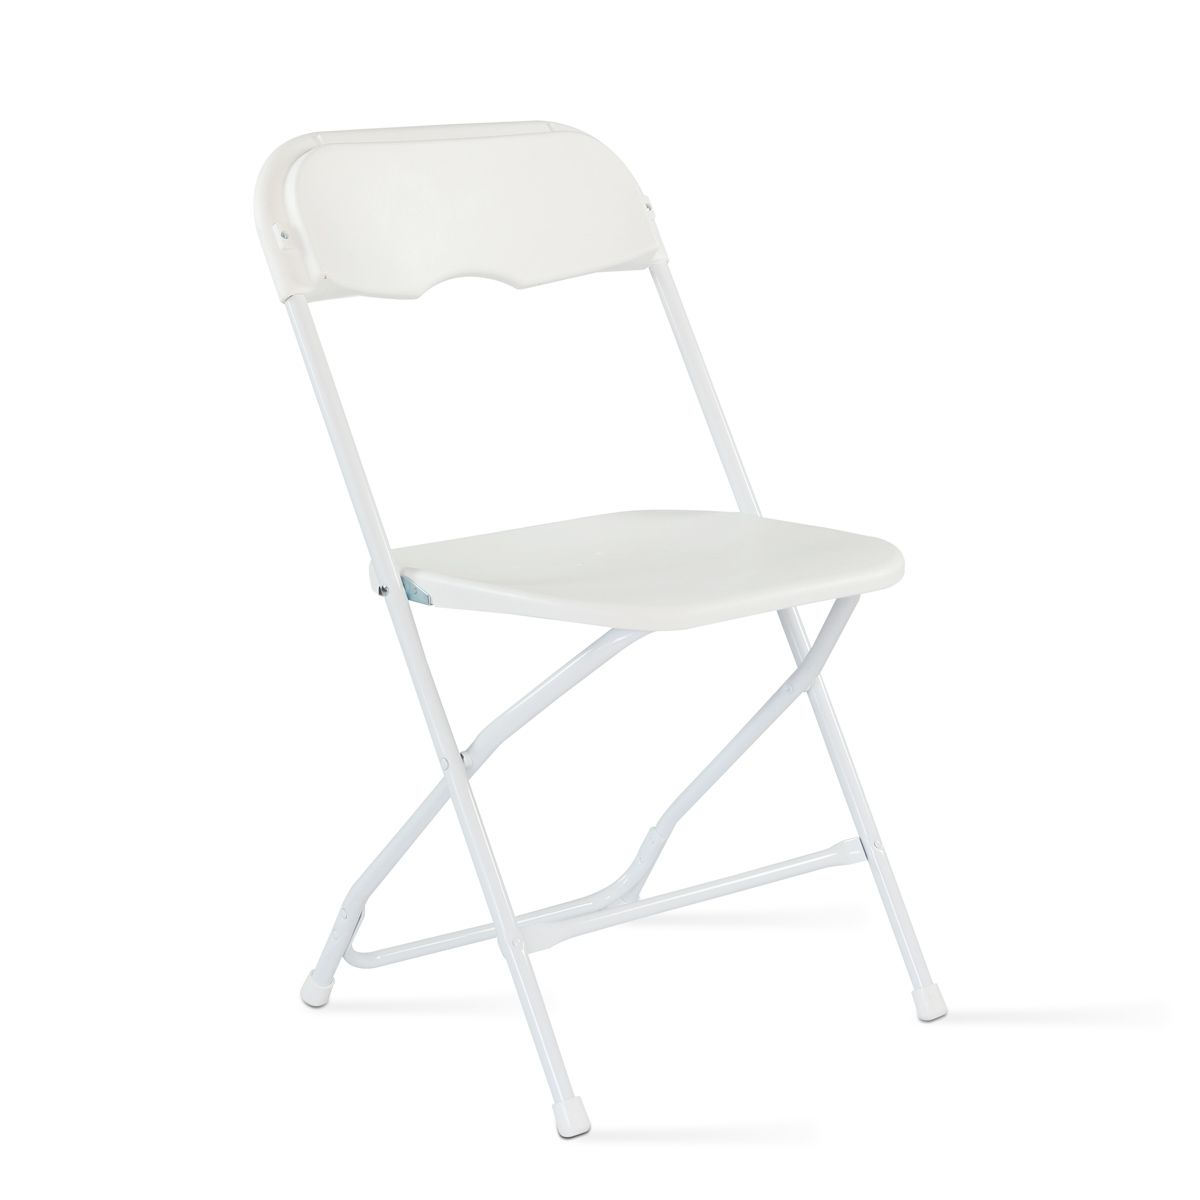 Chaise pvc pas cher great chaise bistrot pvc with chaise - Chaise plastique pas cher ...